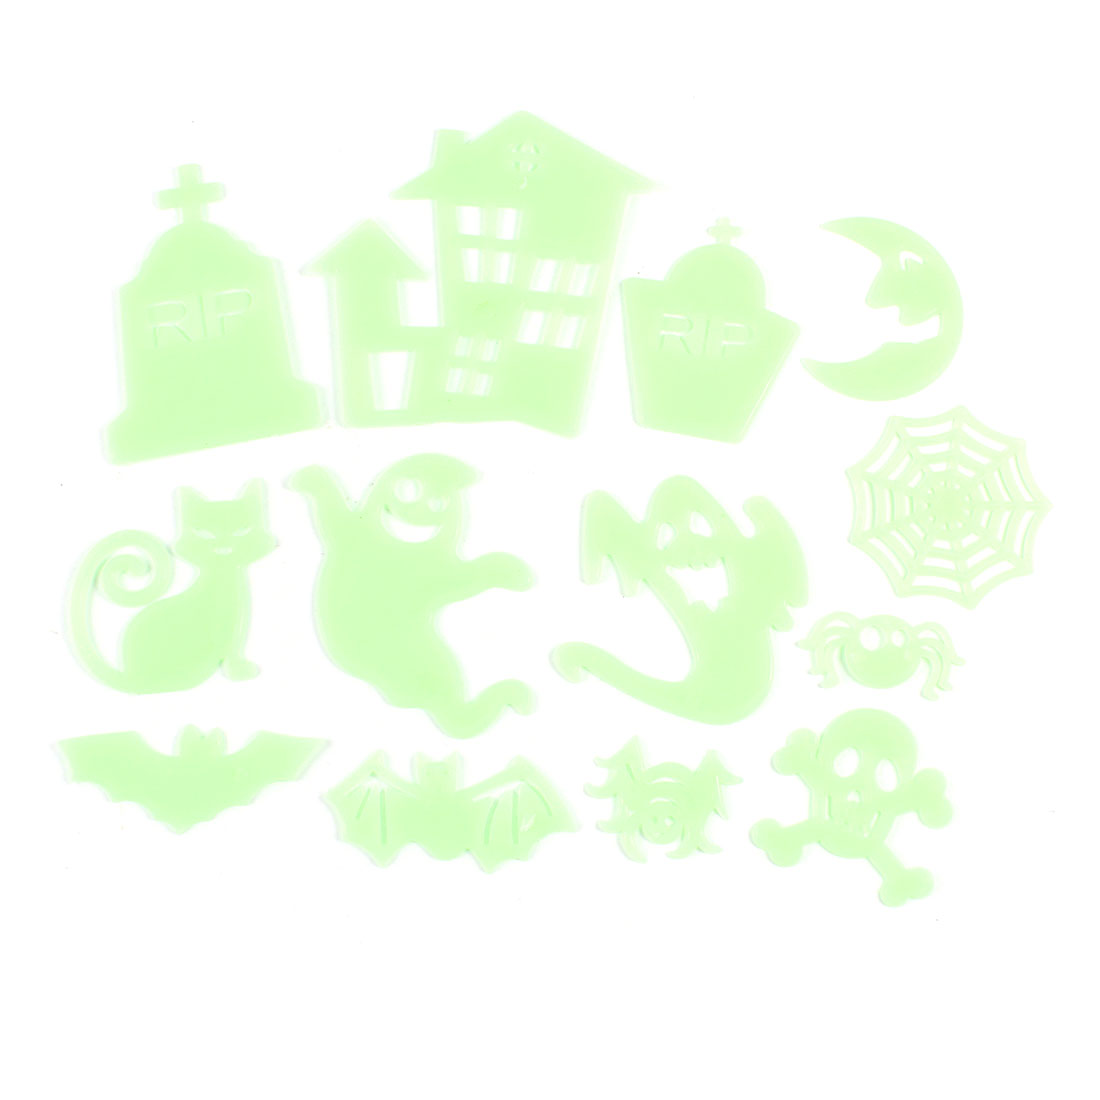 13 in 1 Light Green Wall Mount Ceiling Plastic Halloween Design Stickers